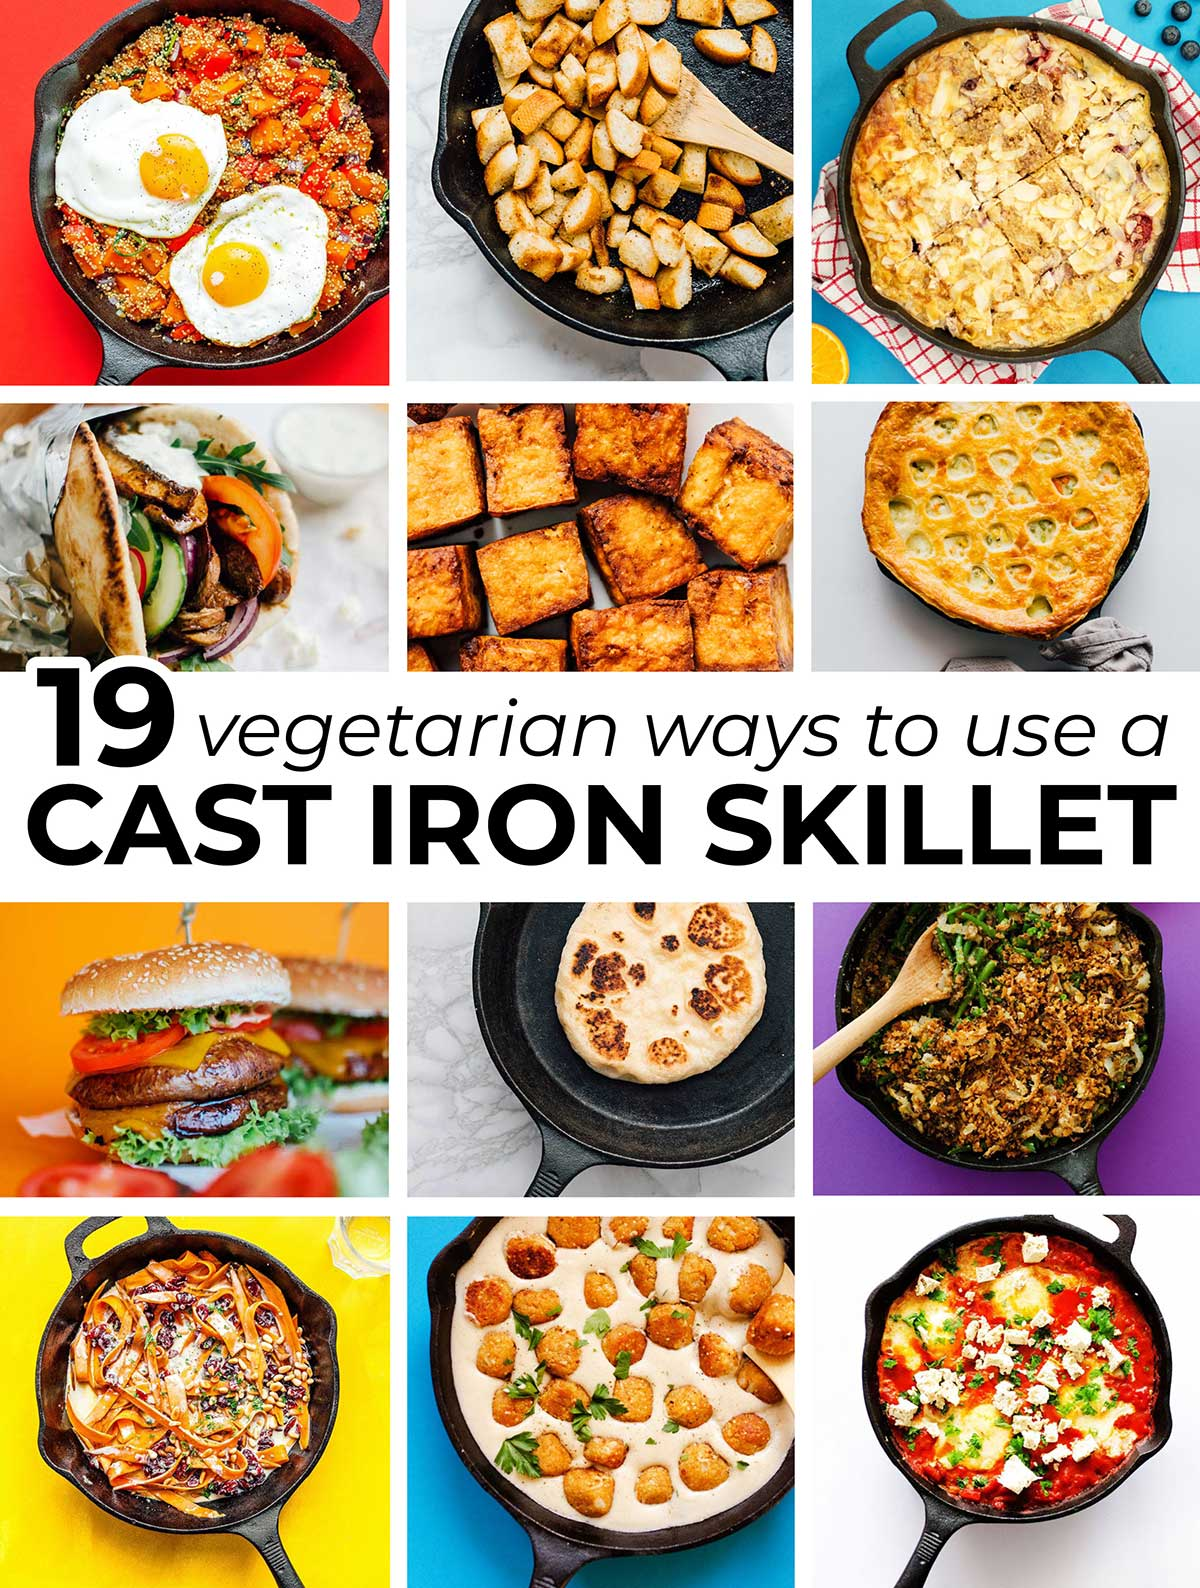 19 Vegetarian Cast Iron Skillet Recipes Live Eat Learn